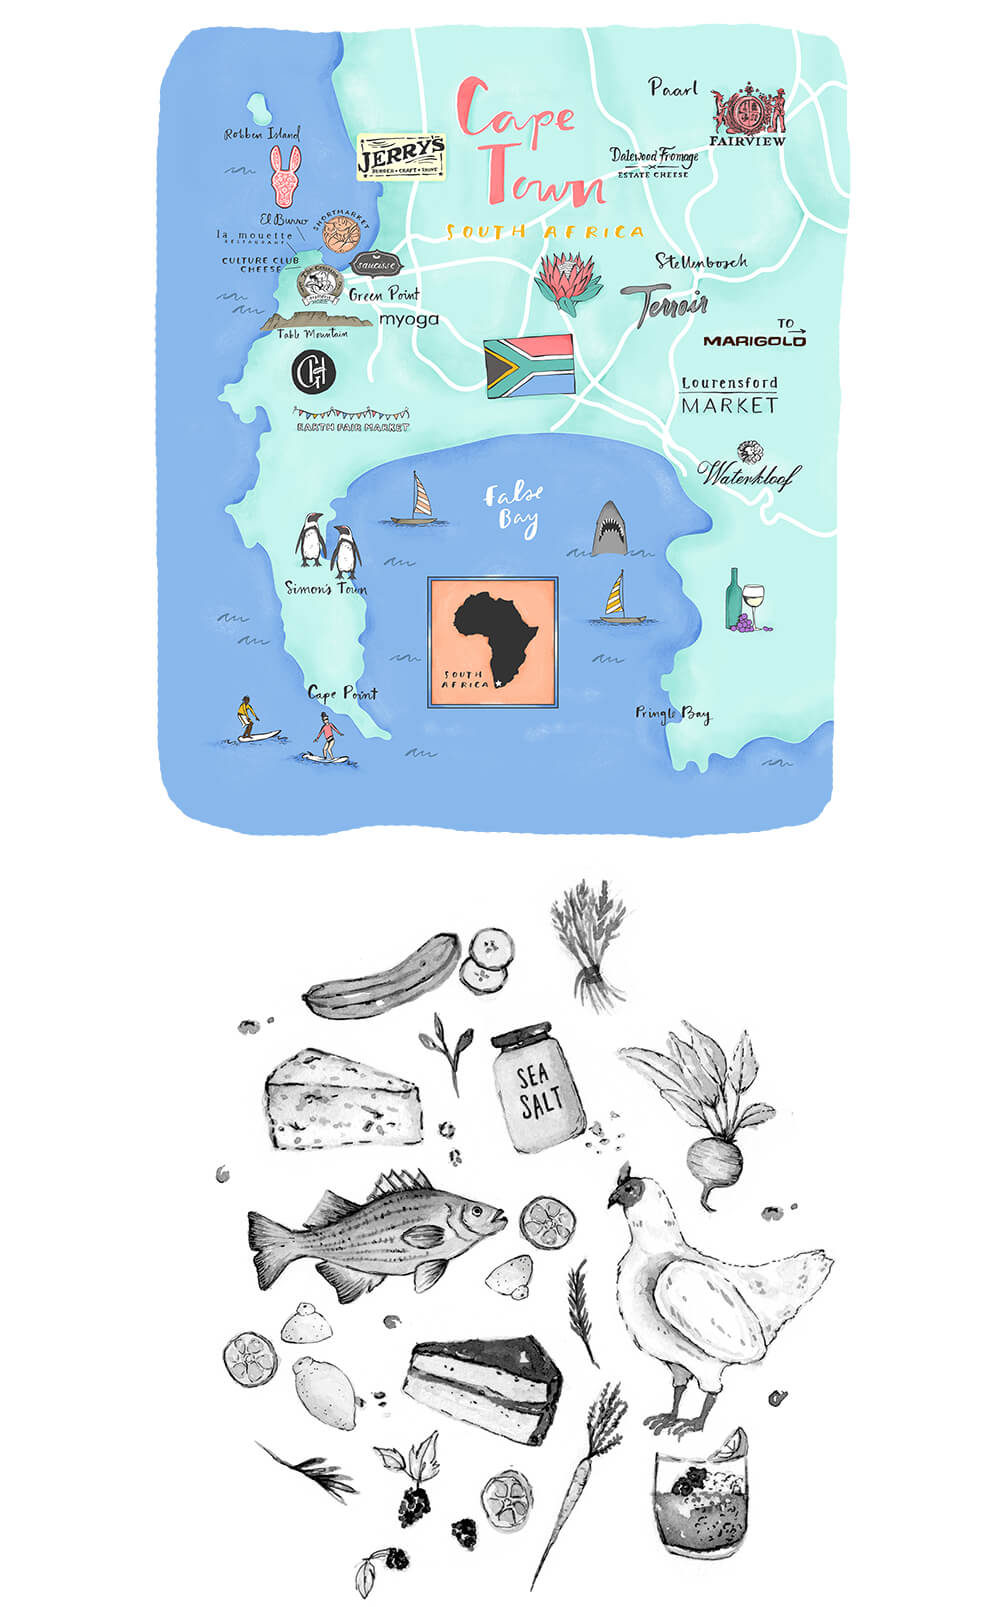 Cape town map and food illustrations